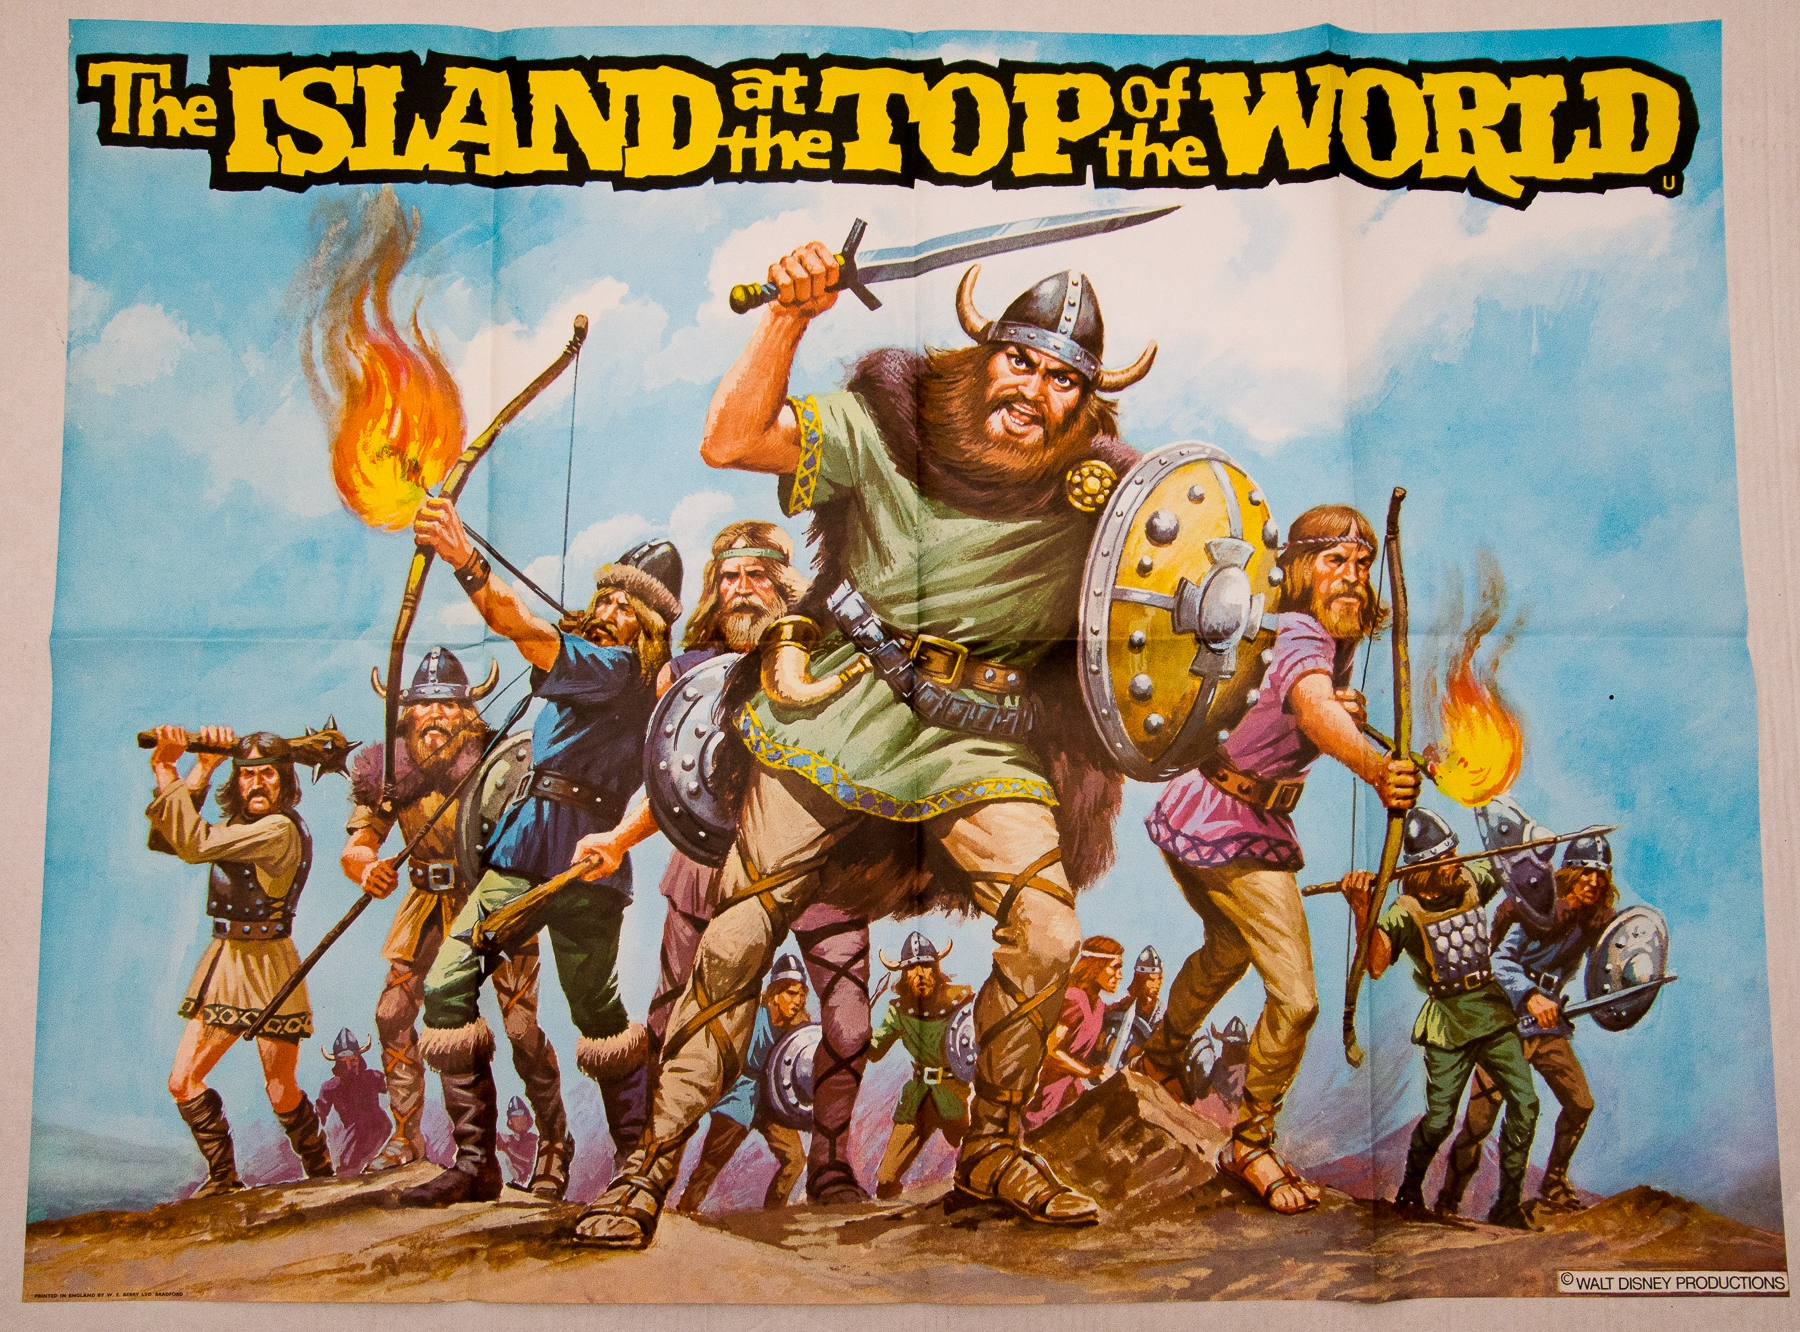 ISLAND AT THE TOP OF THE WORLD LOT (1974) - (3 in Lot) - 3 x UK Quad Film Posters - Main design, ' - Image 3 of 3